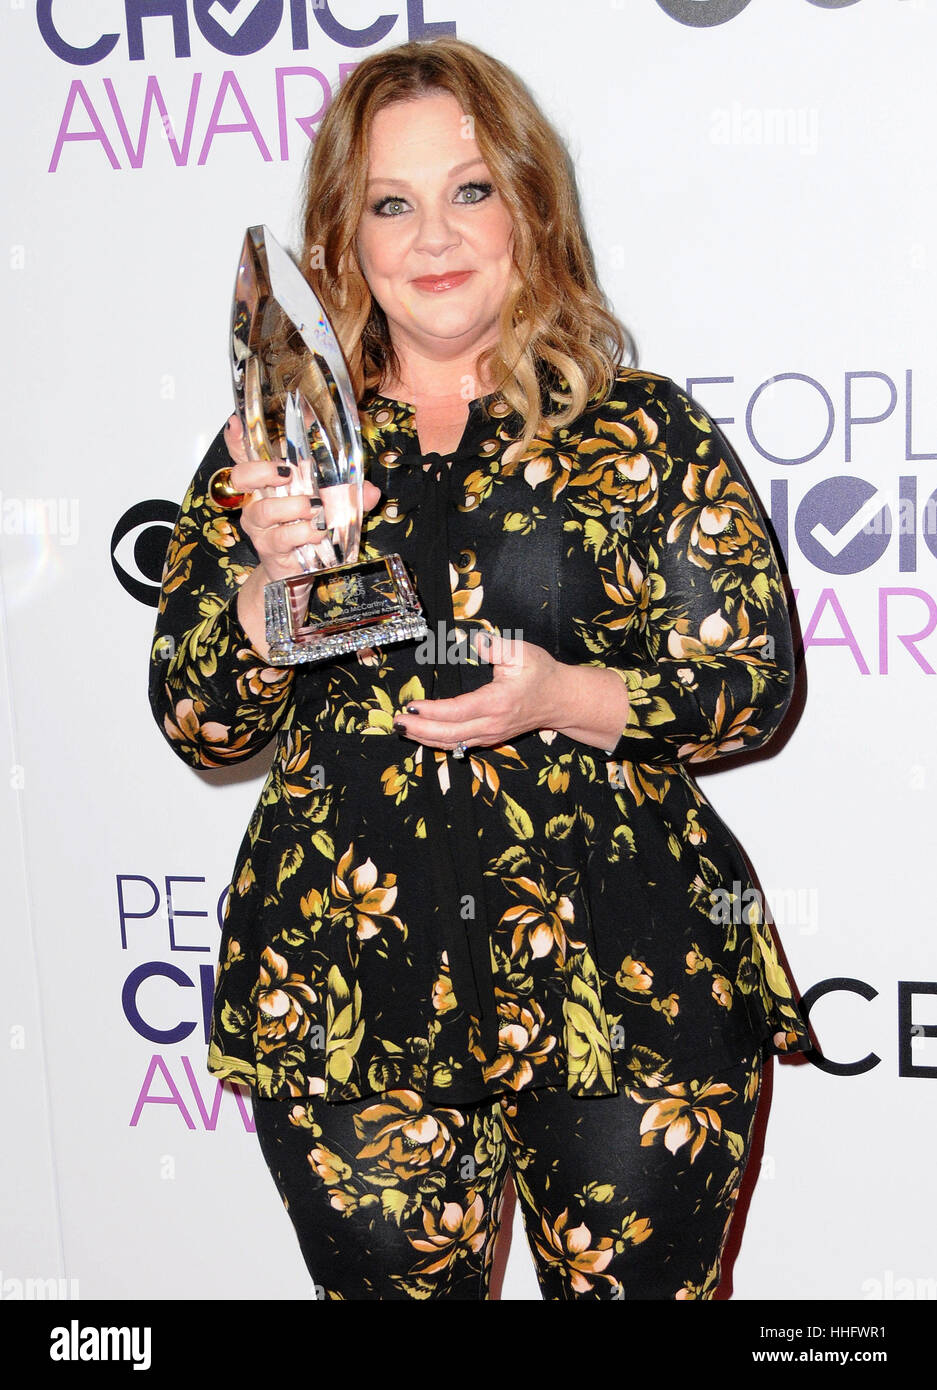 Los Angeles, CA, USA. 18 janvier, 2017. 18 janvier 2017 - Los Angeles, Californie - Melissa McCarthy. 2017 People's Photo Stock